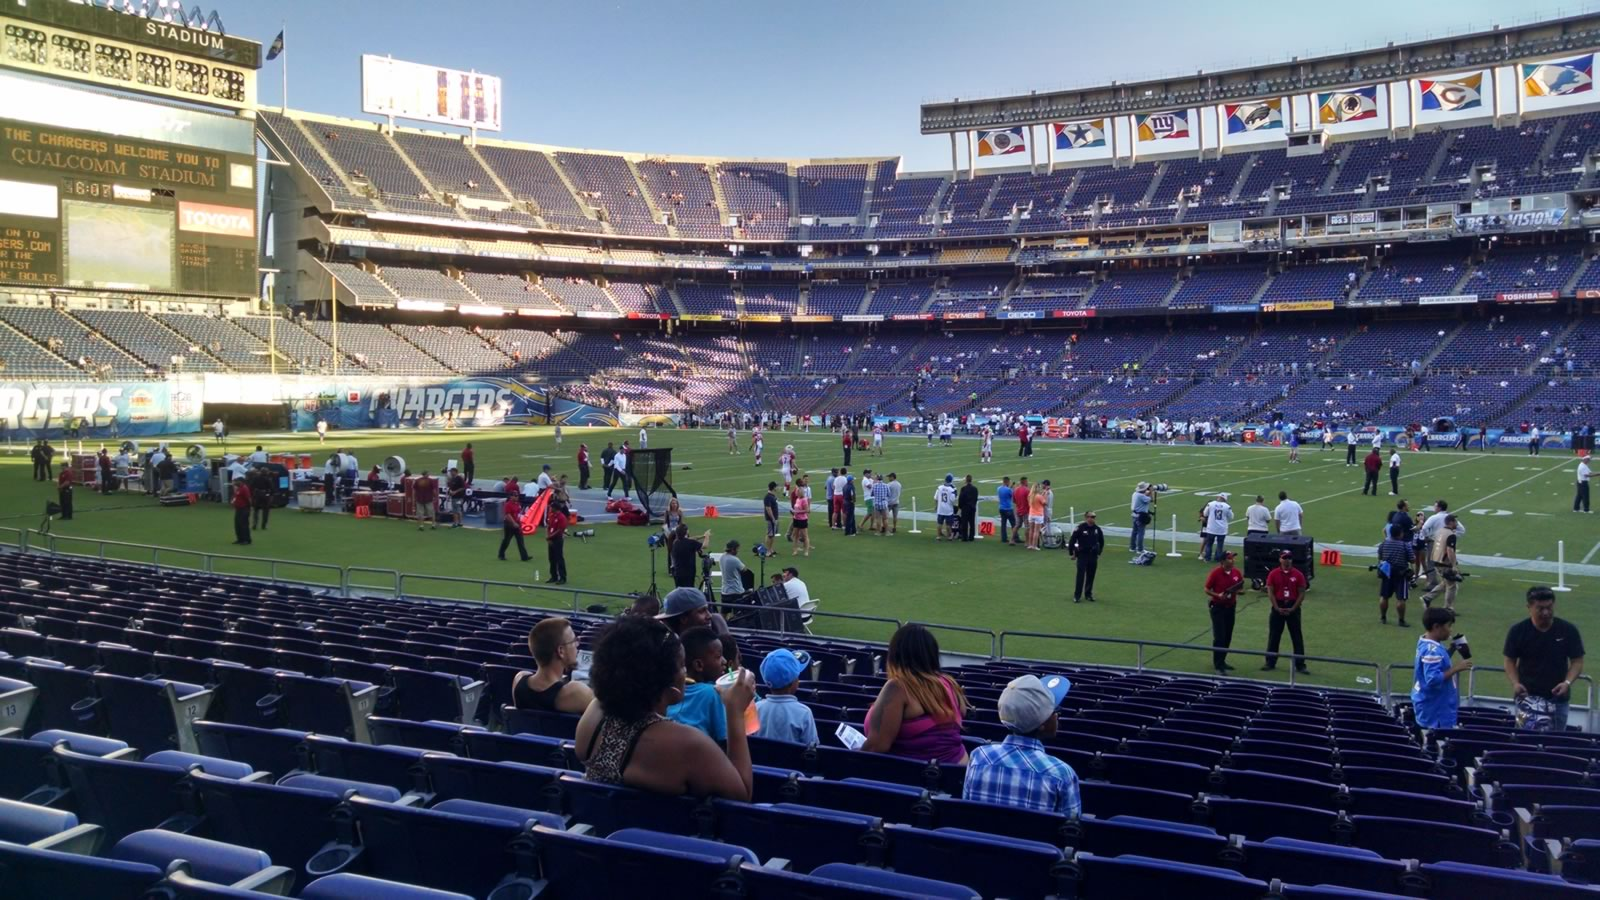 Seat View for Qualcomm Stadium Field 10, Row 17, Seat 8